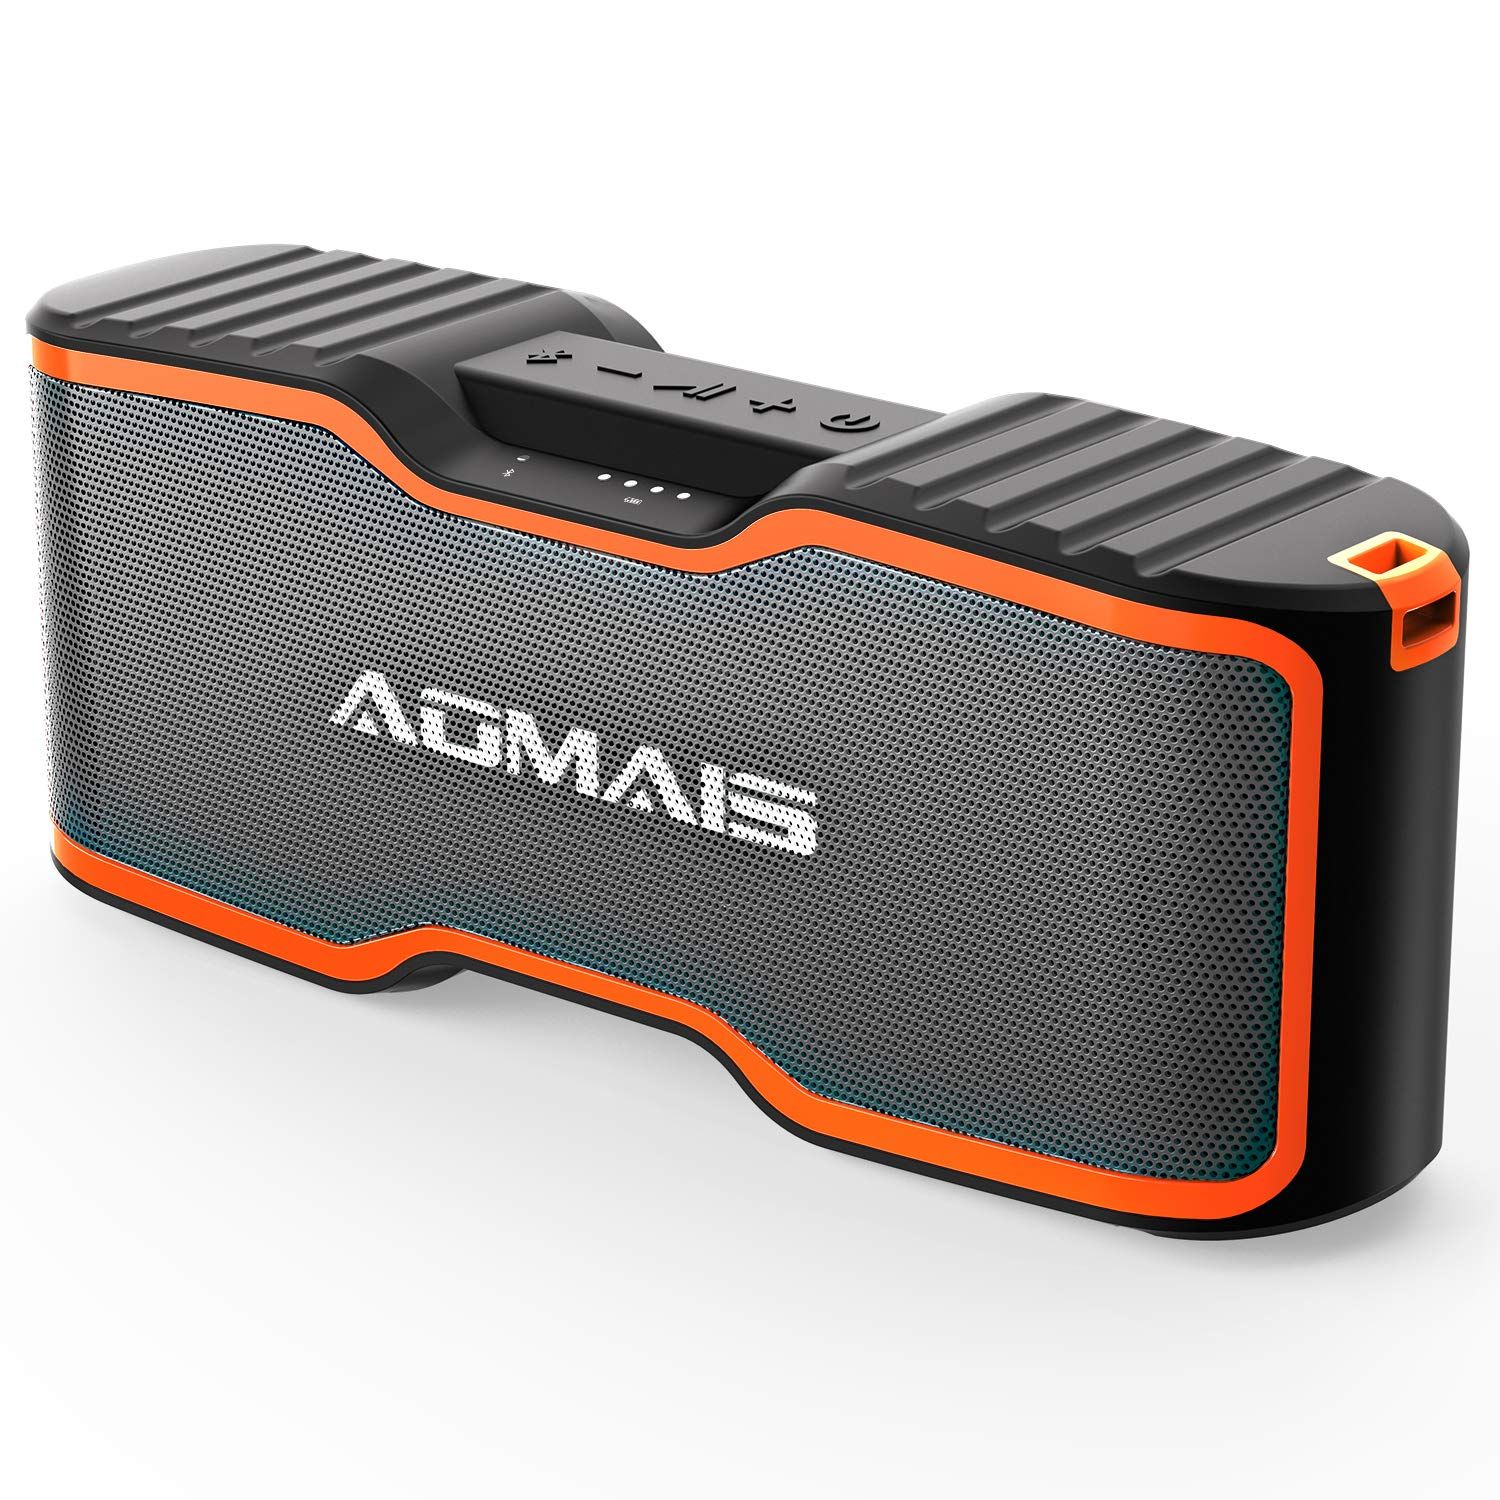 (2018 Upgrade) AOMAIS Sport II+ Bluetooth Speakers, Portable Wireless Speaker with Loud Sound, IPX7 Waterproof, 20 Hours Playtime, 99 ft Bluetooth Range & Built-in Mic, Perfect for Party, Beach,Shower by AOMAIS